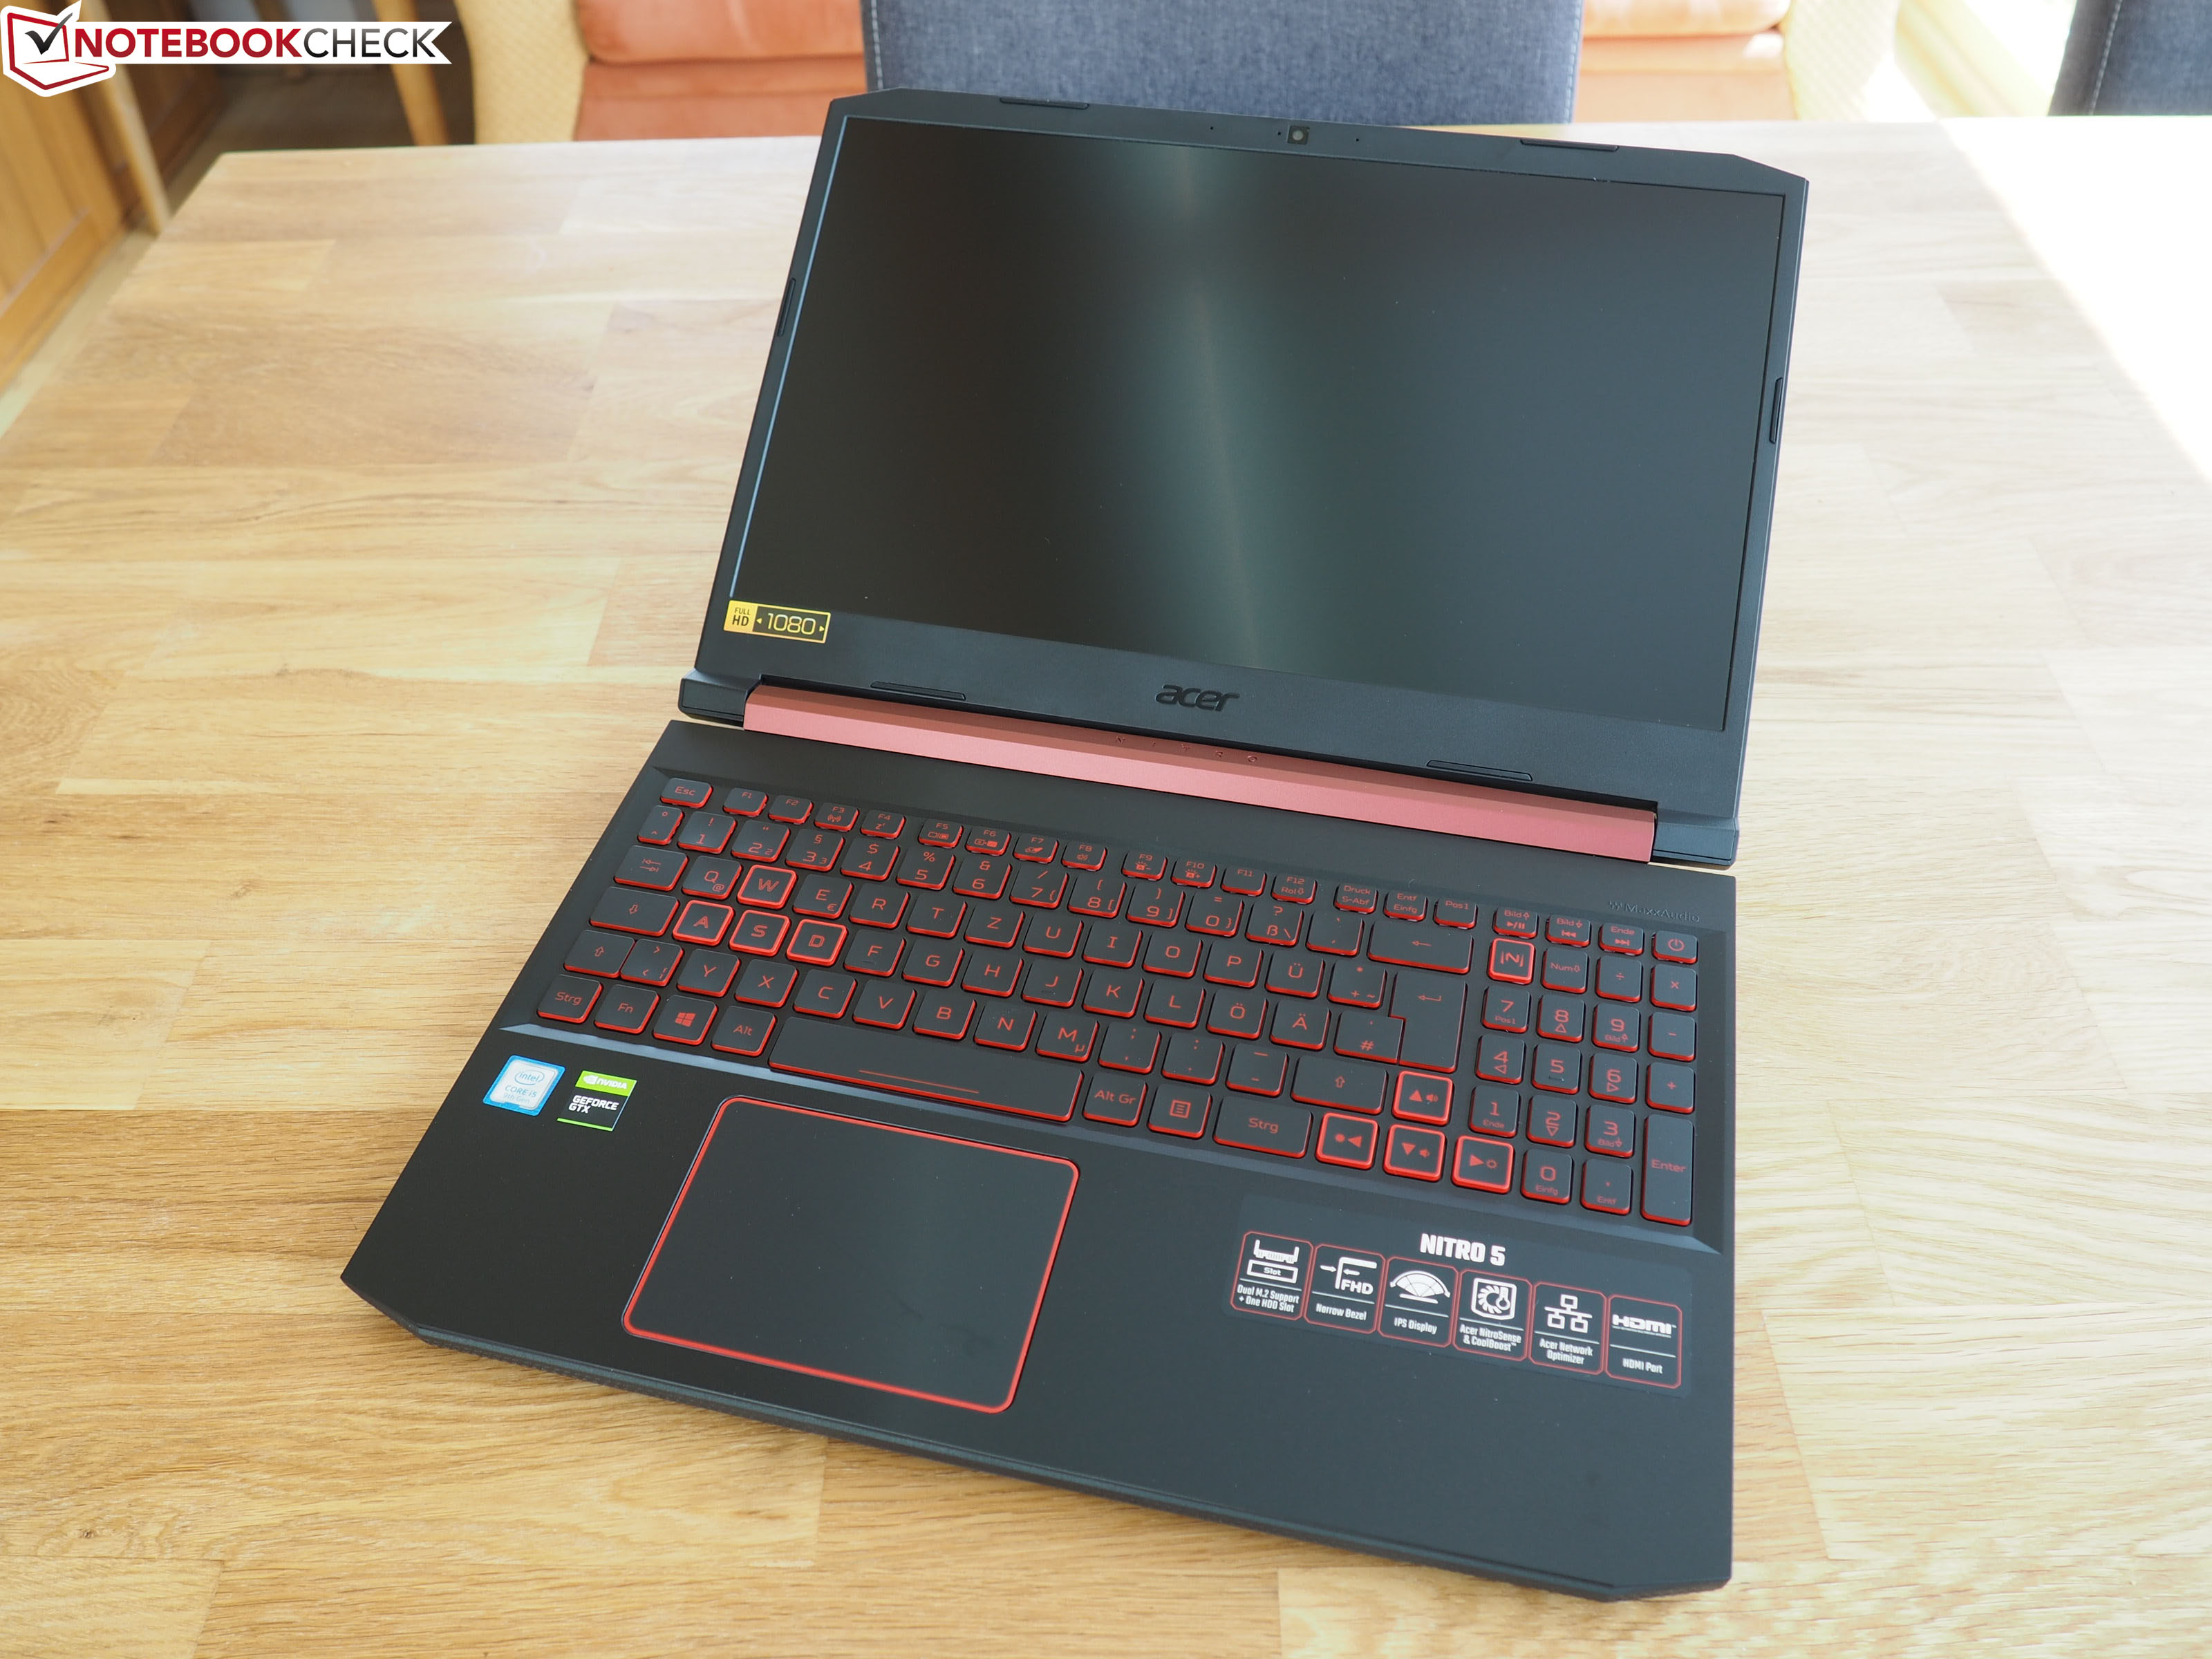 Acer Nitro 5 (Core i5-9300H, GeForce GTX 1650) Laptop Review